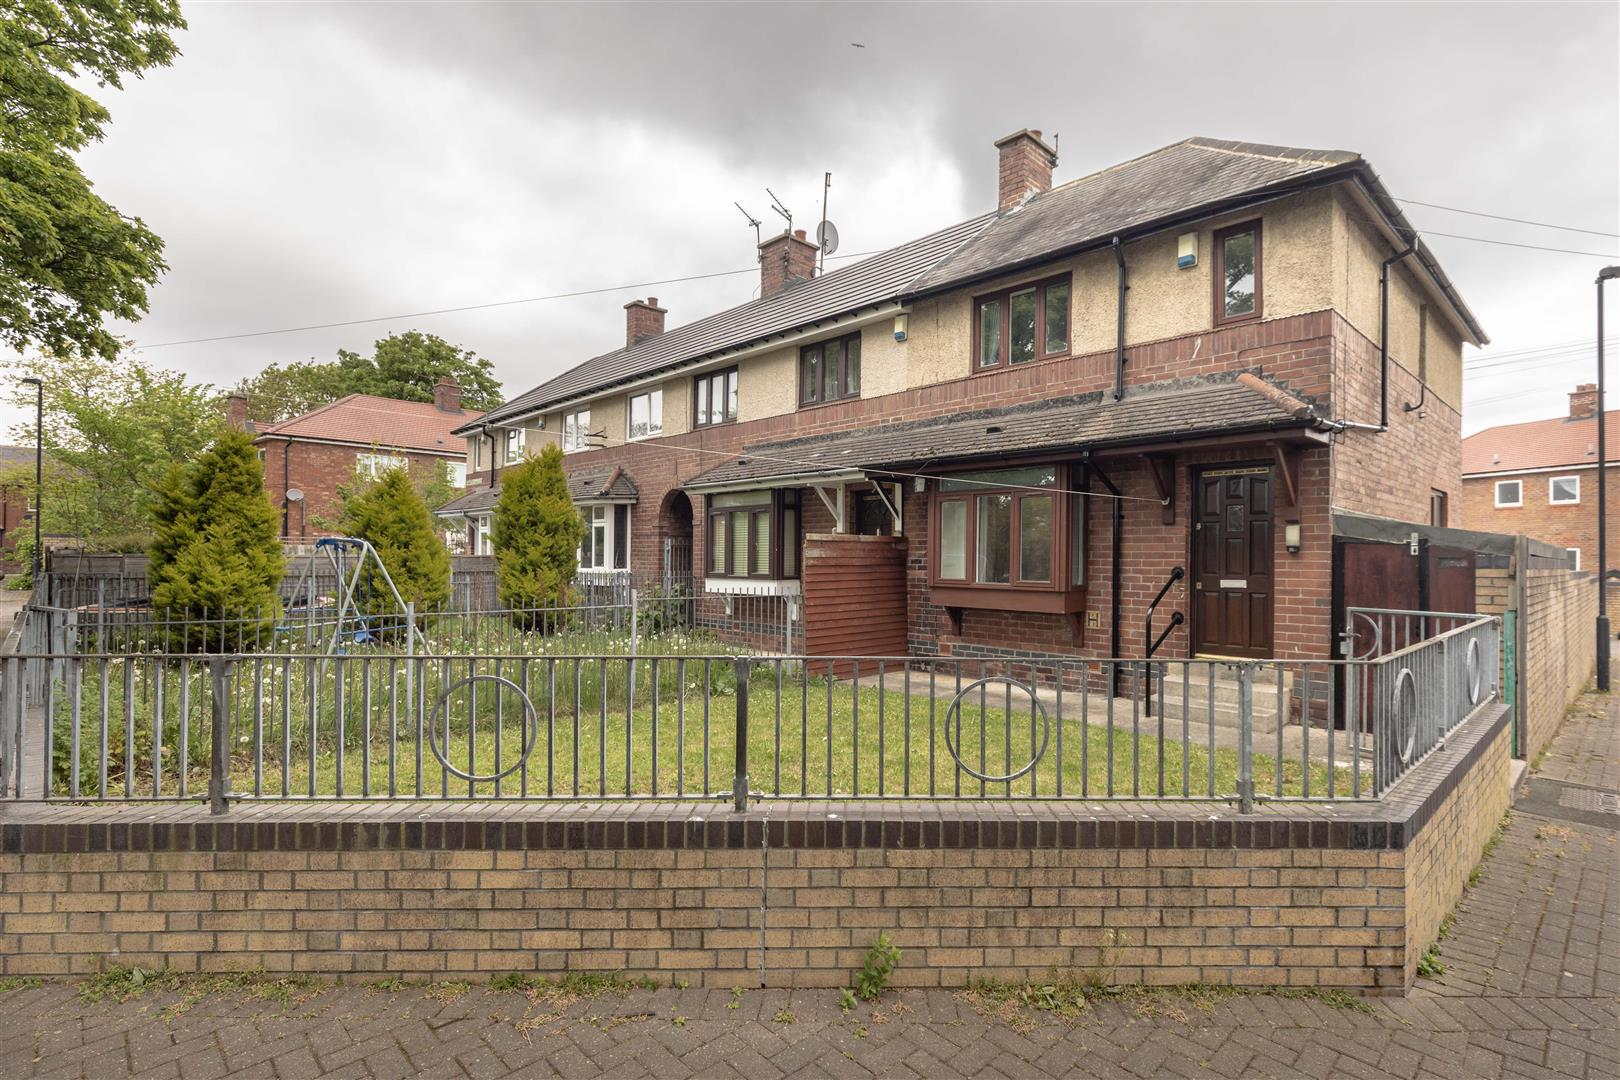 2 bed end of terrace house for sale in North Shields, NE29 7BS, NE29